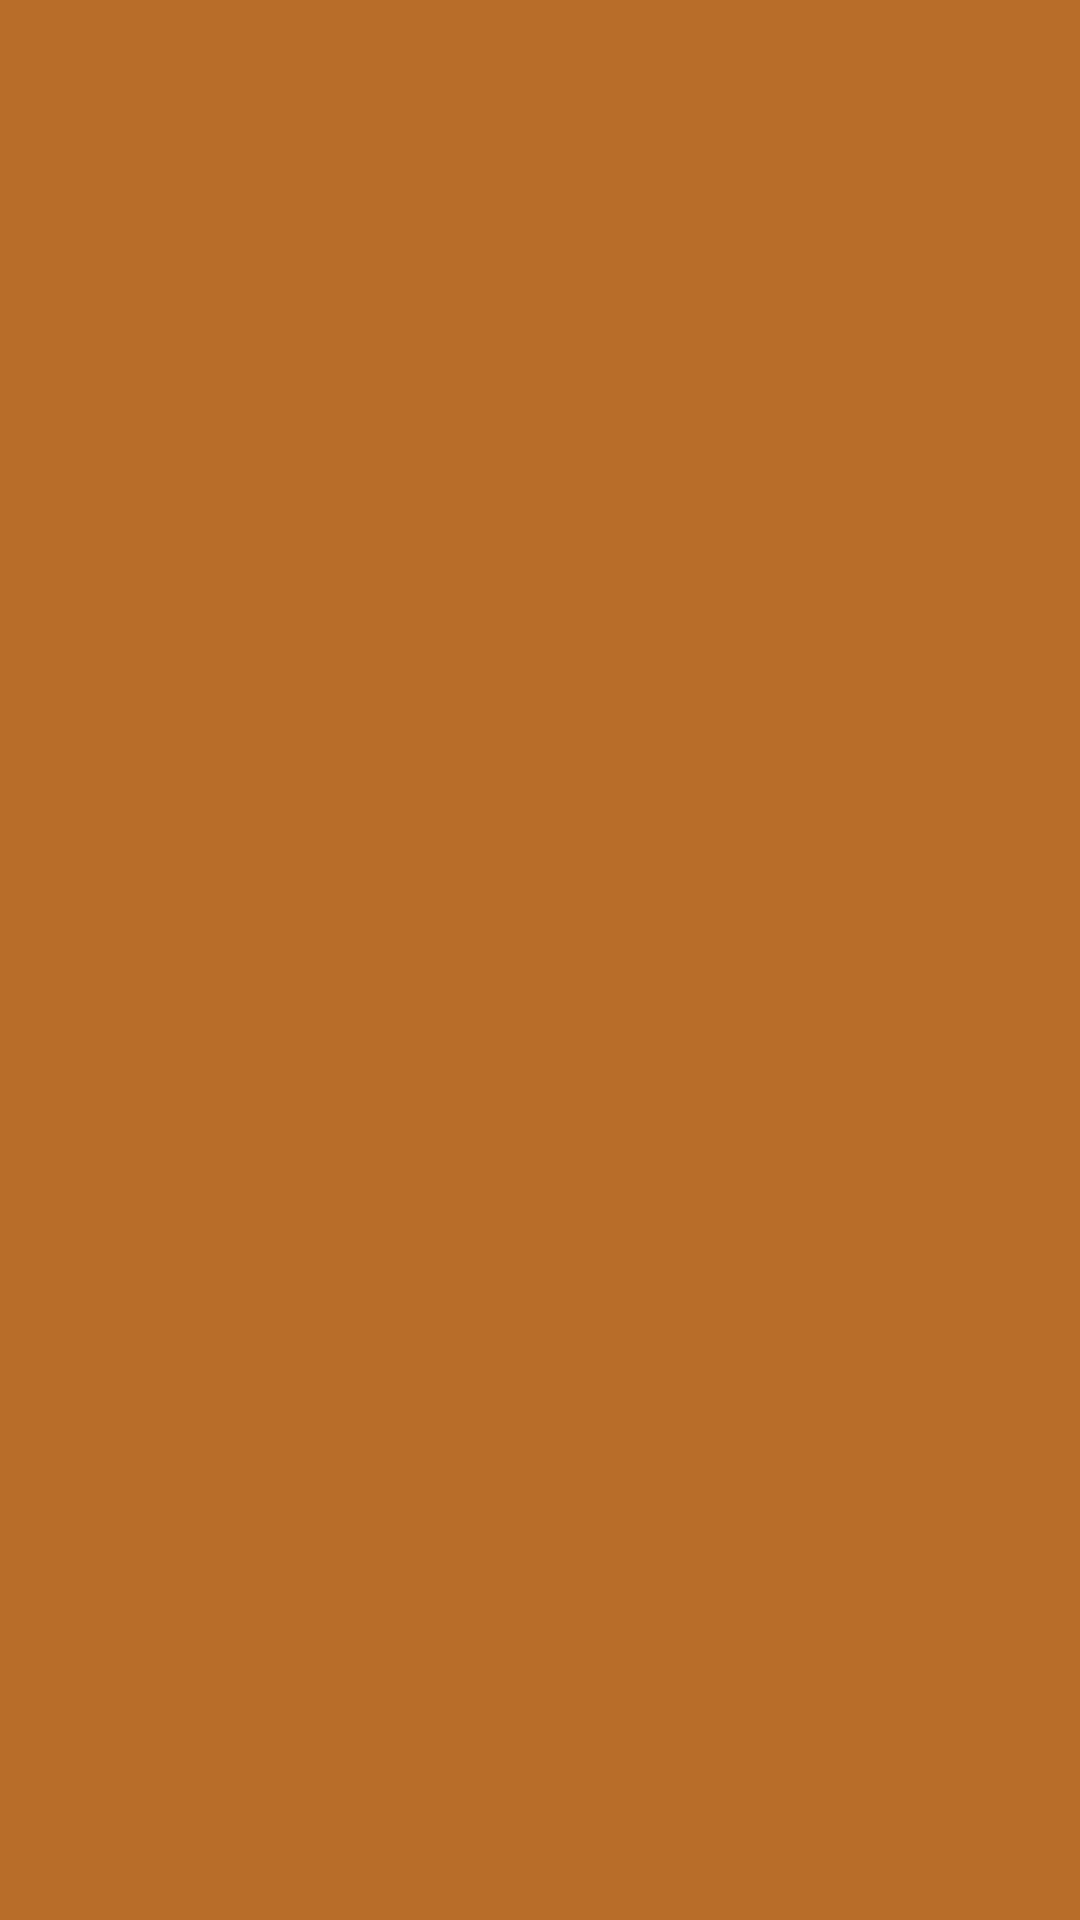 1080x1920 Liver Dogs Solid Color Background